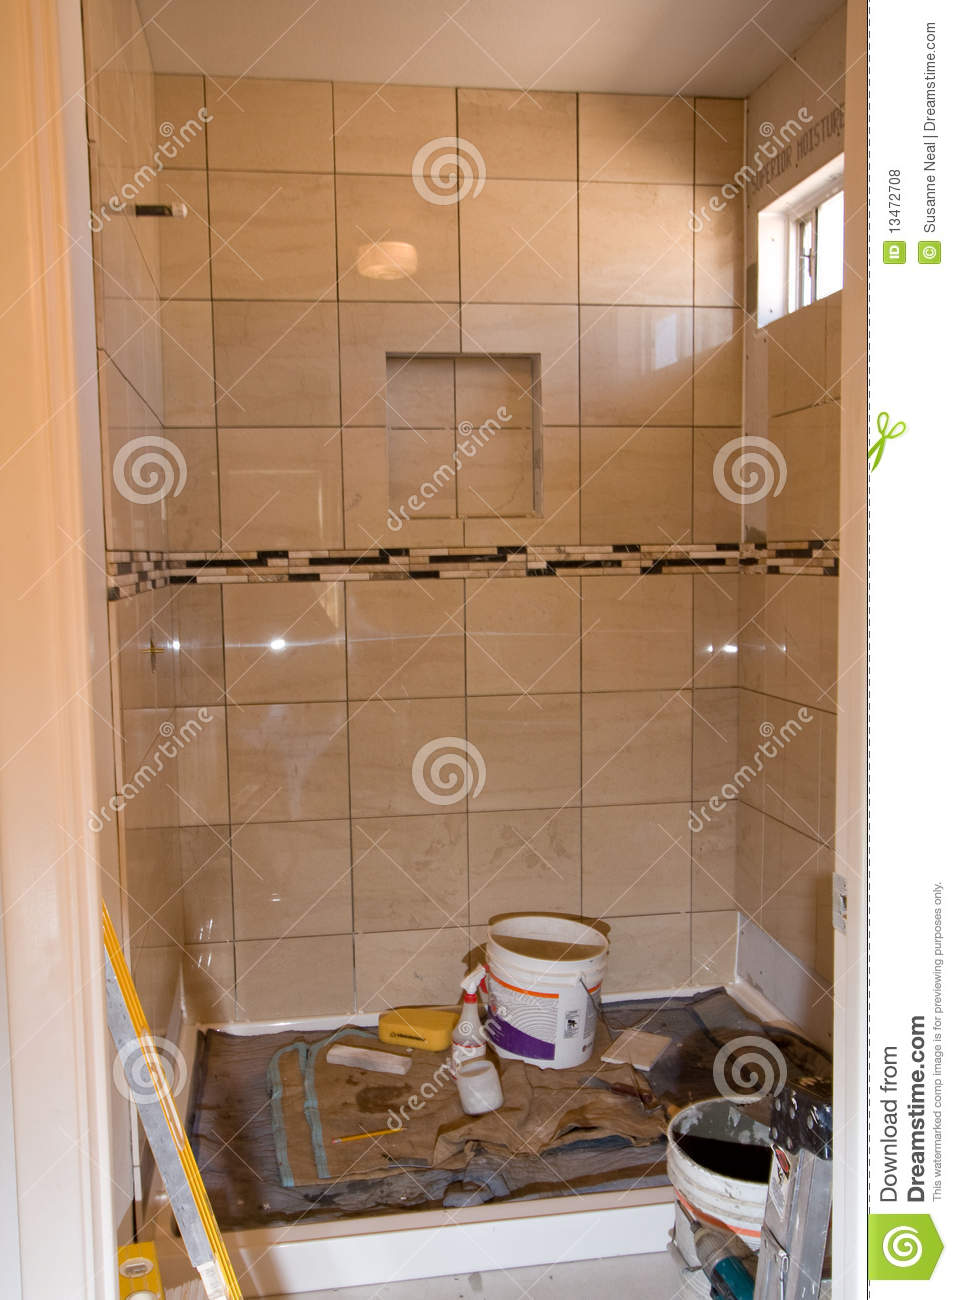 Bathroom Shower Tile Remodel Royalty Free Stock Photos